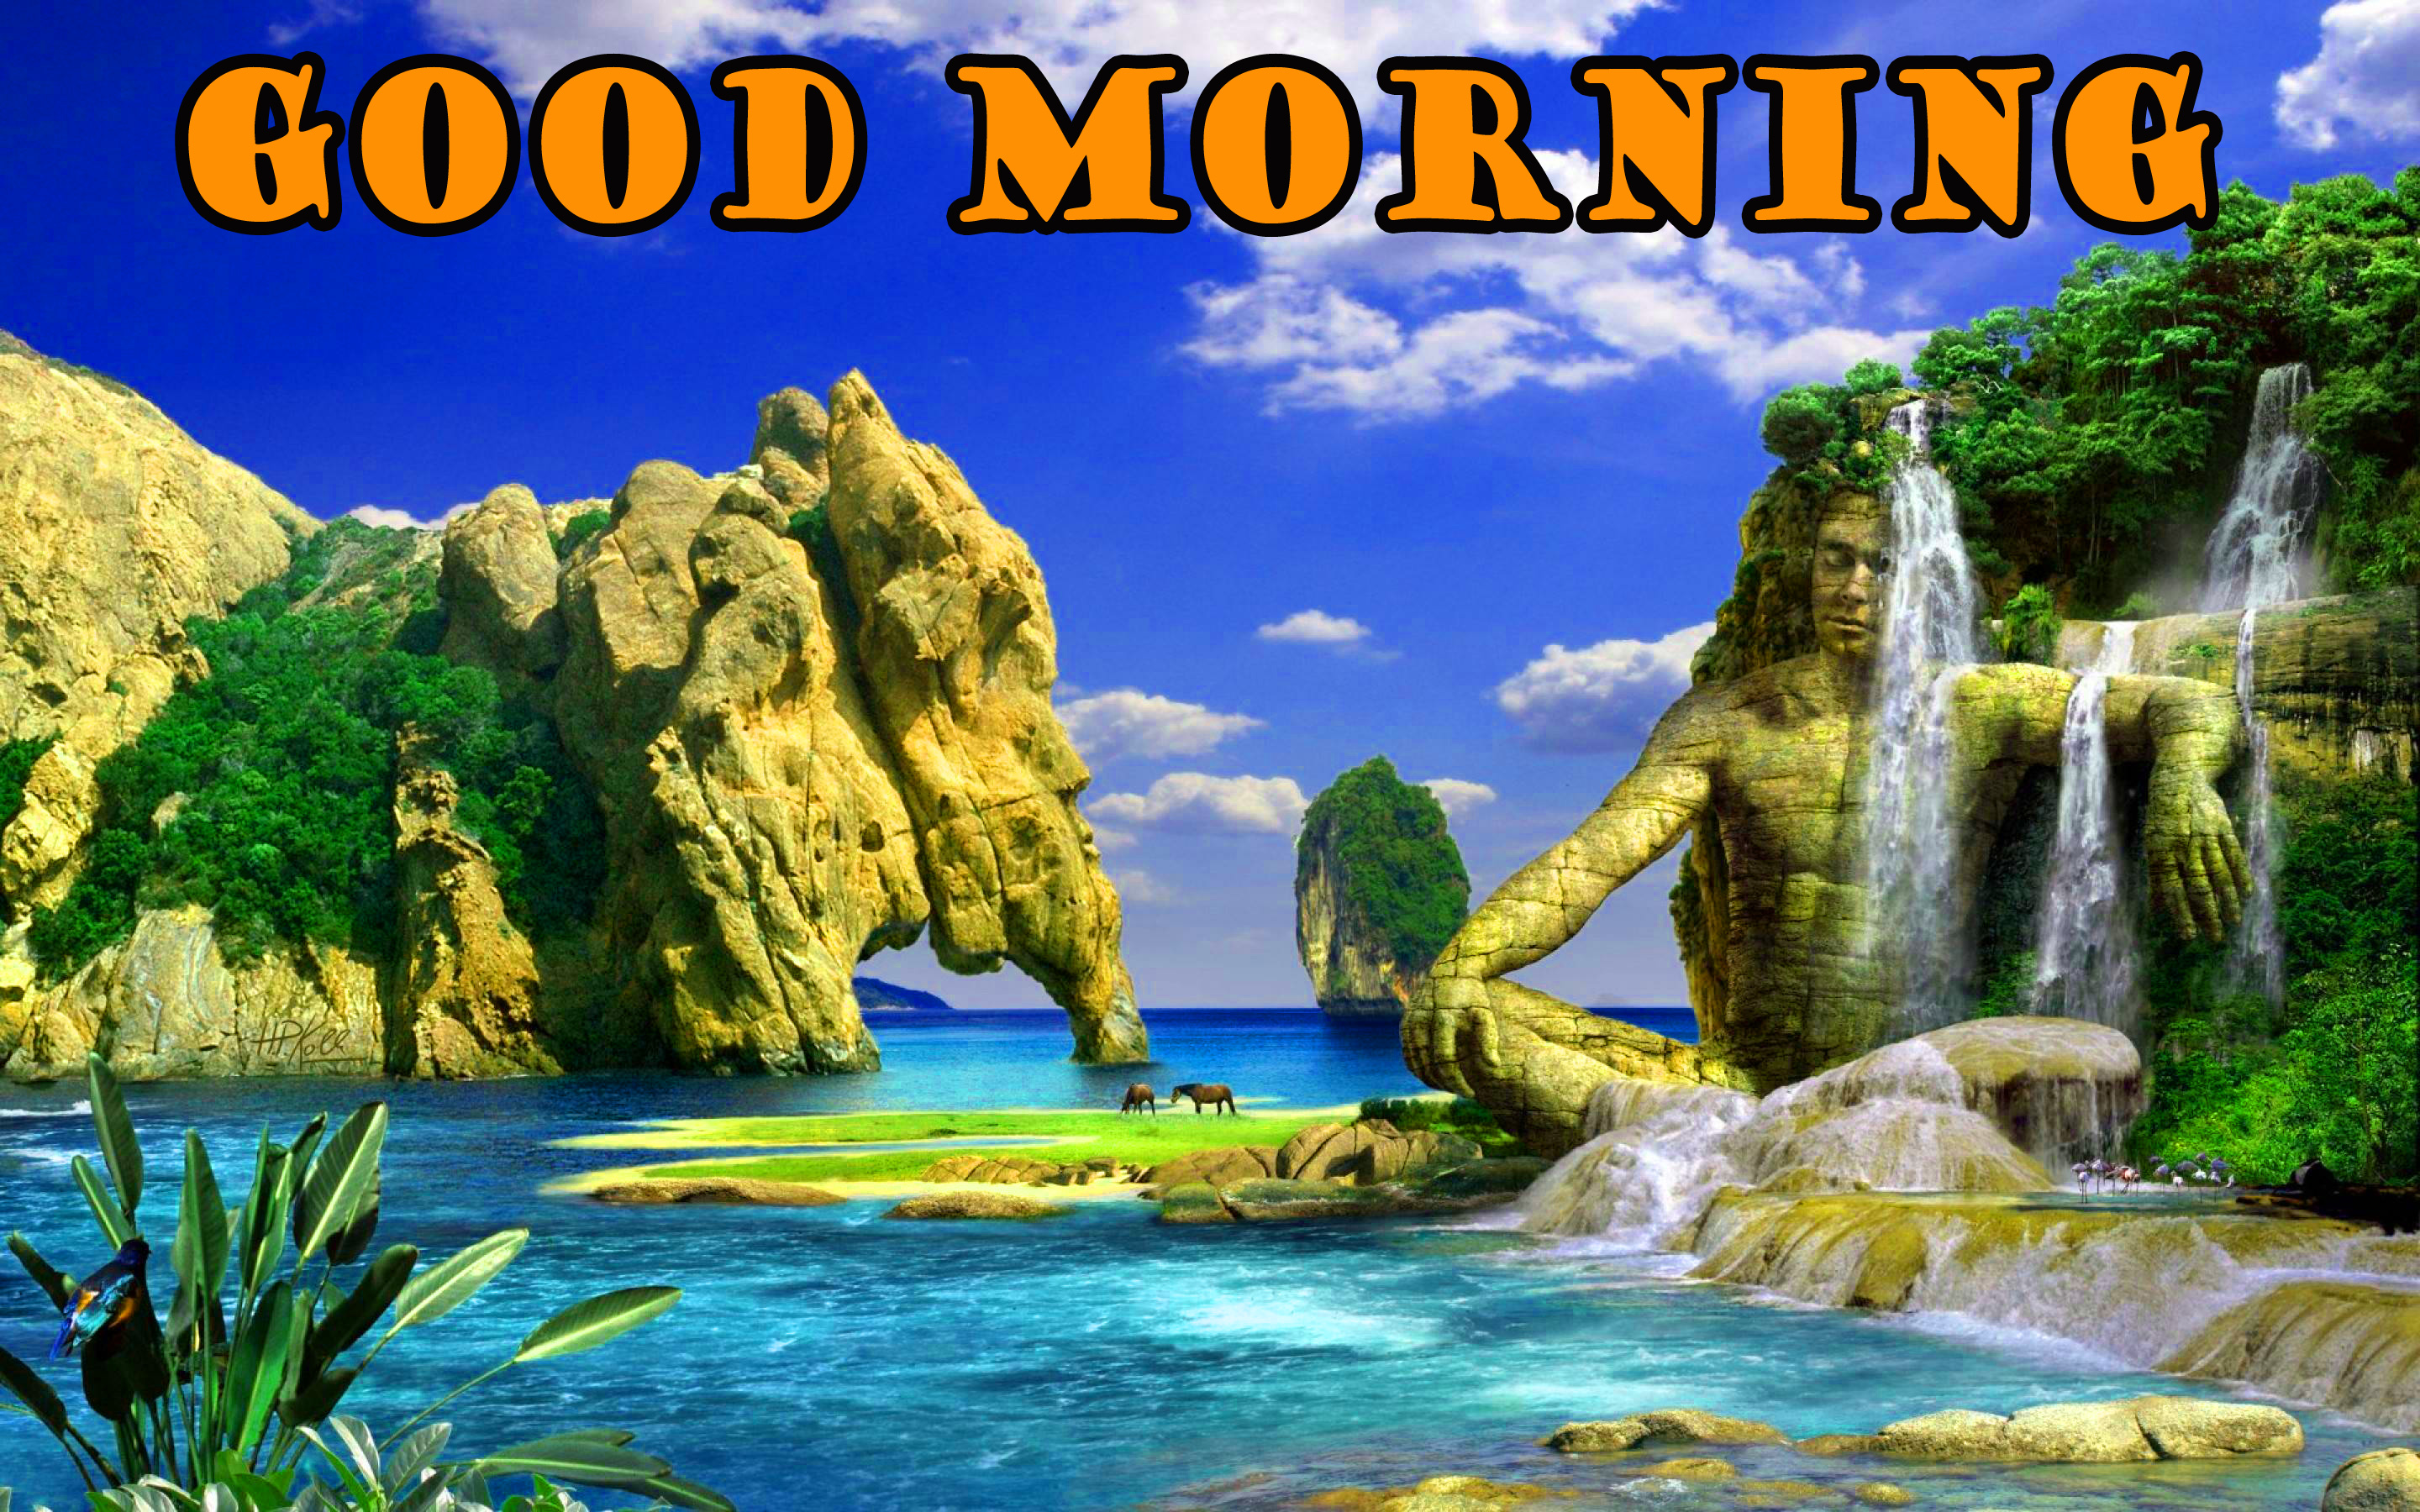 Good Morning Nature Wallpaper Pictures Images Free HD